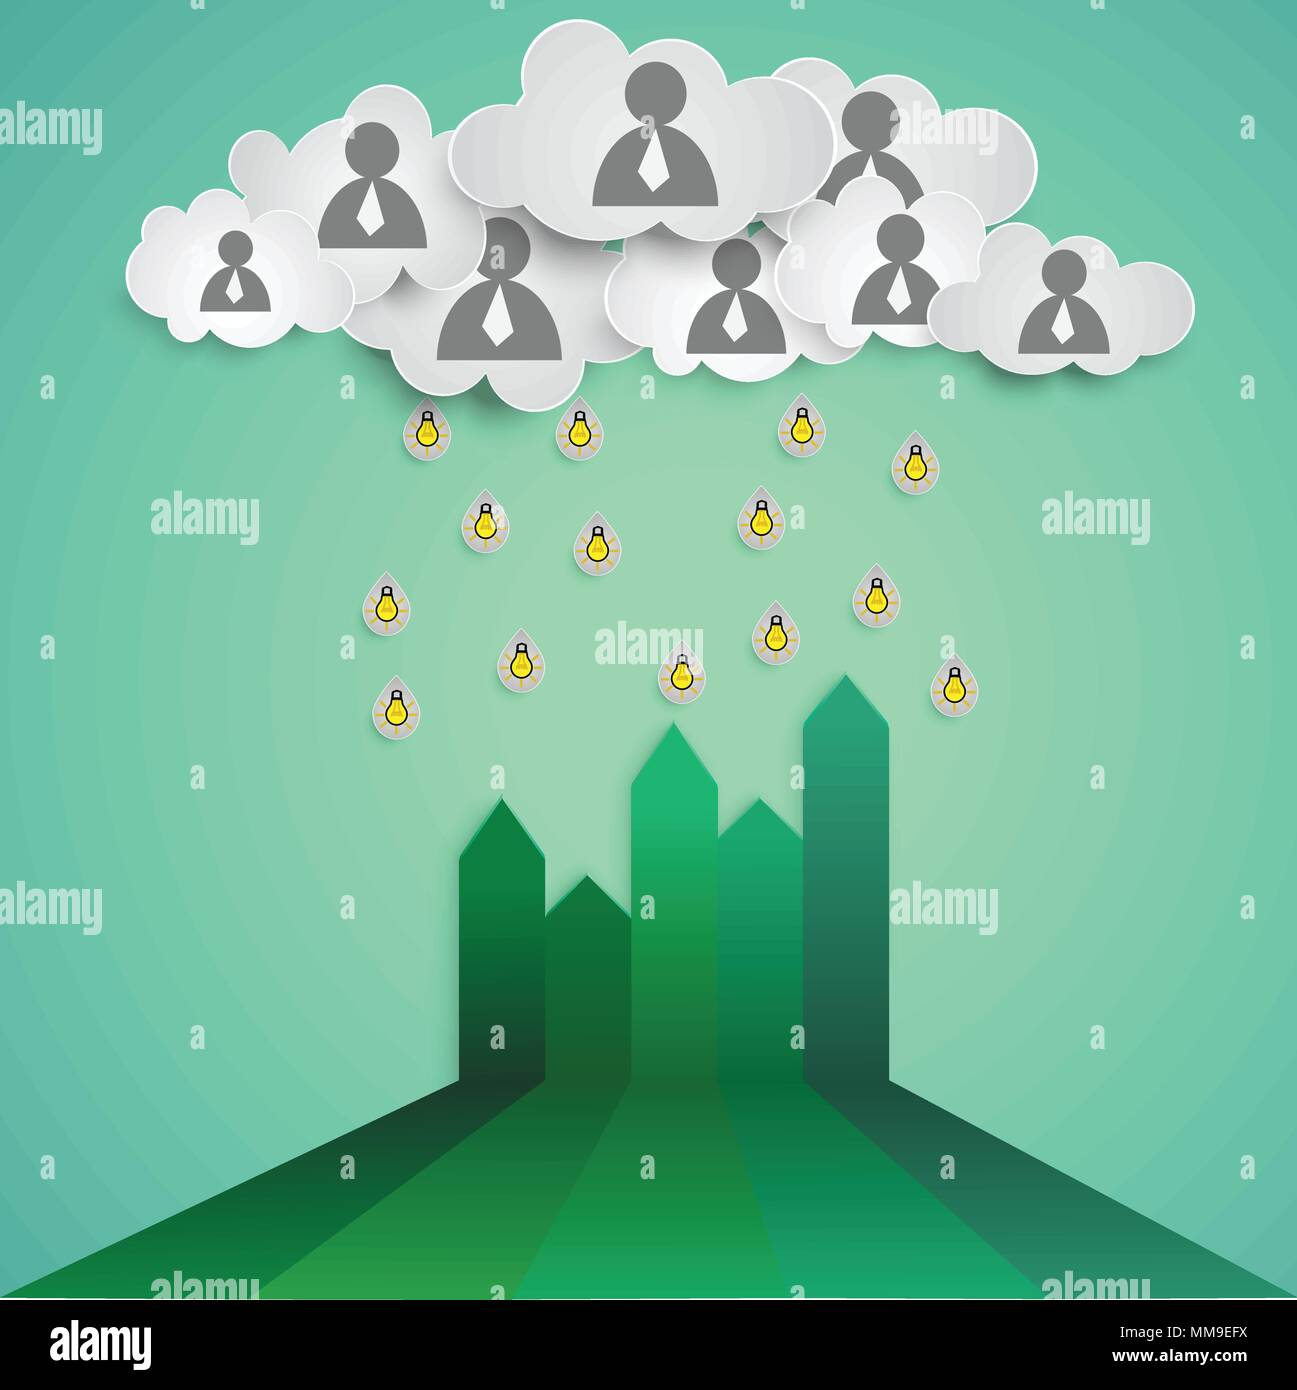 Business Concept Teamwork Cloud Fill Ideas On The Growth Chart